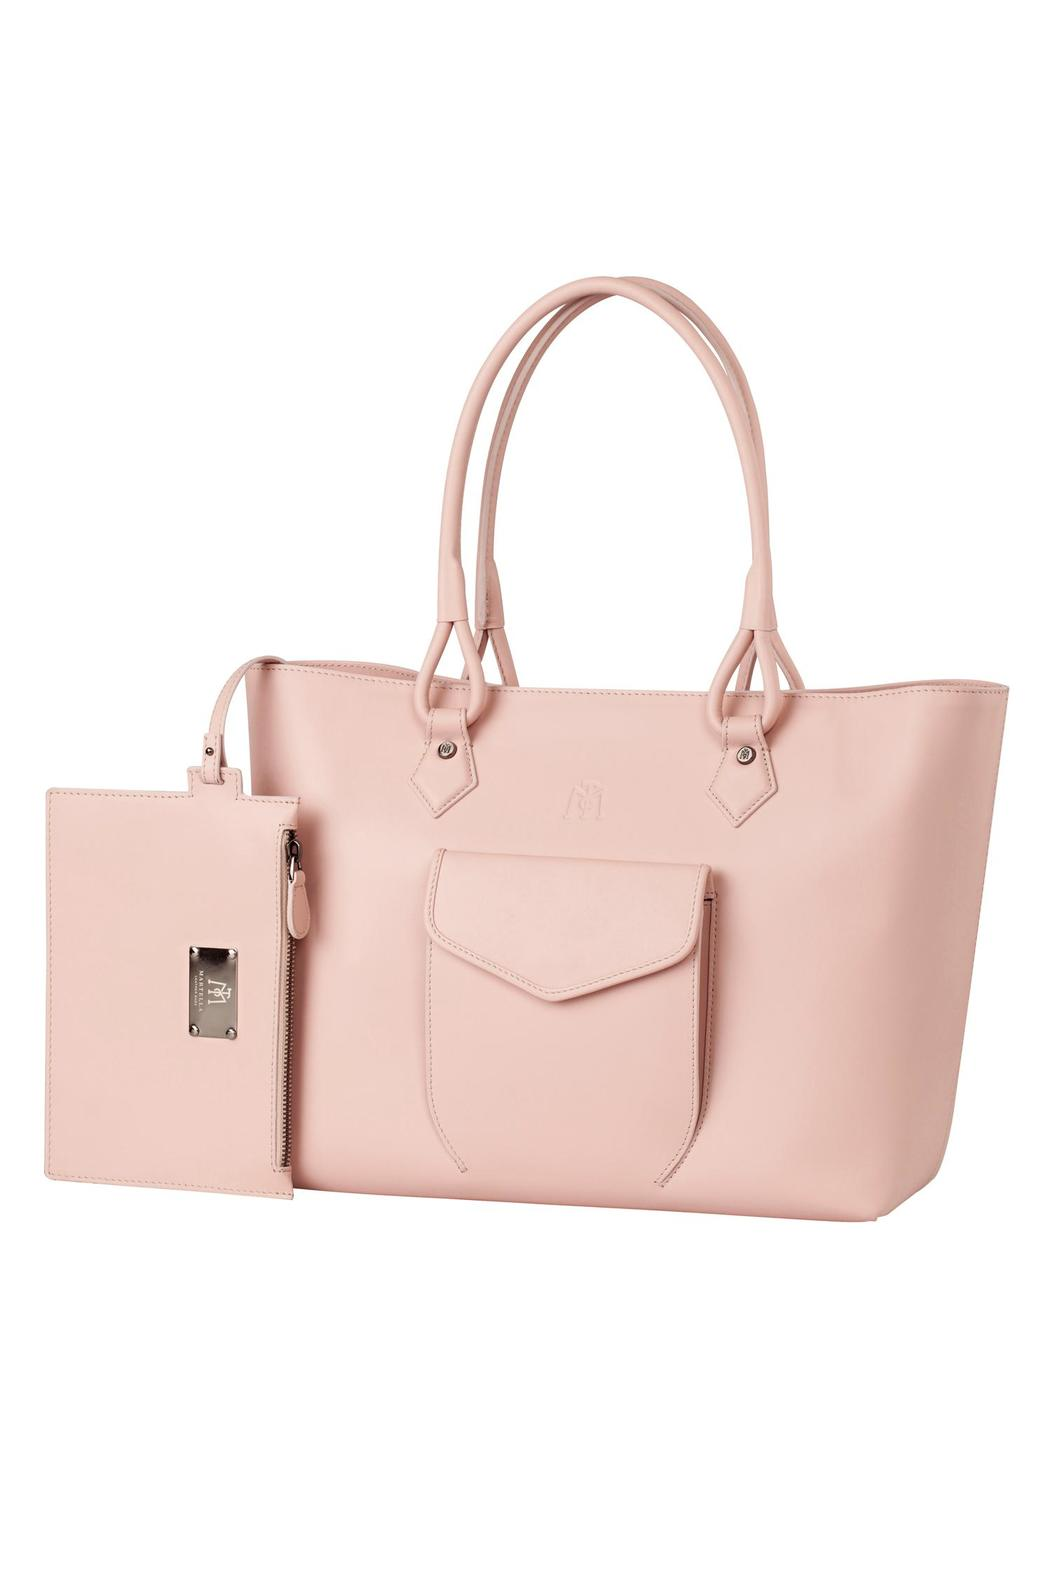 Martella Bags Blush Pink Leather Tote from Tel Aviv — Shoptiques